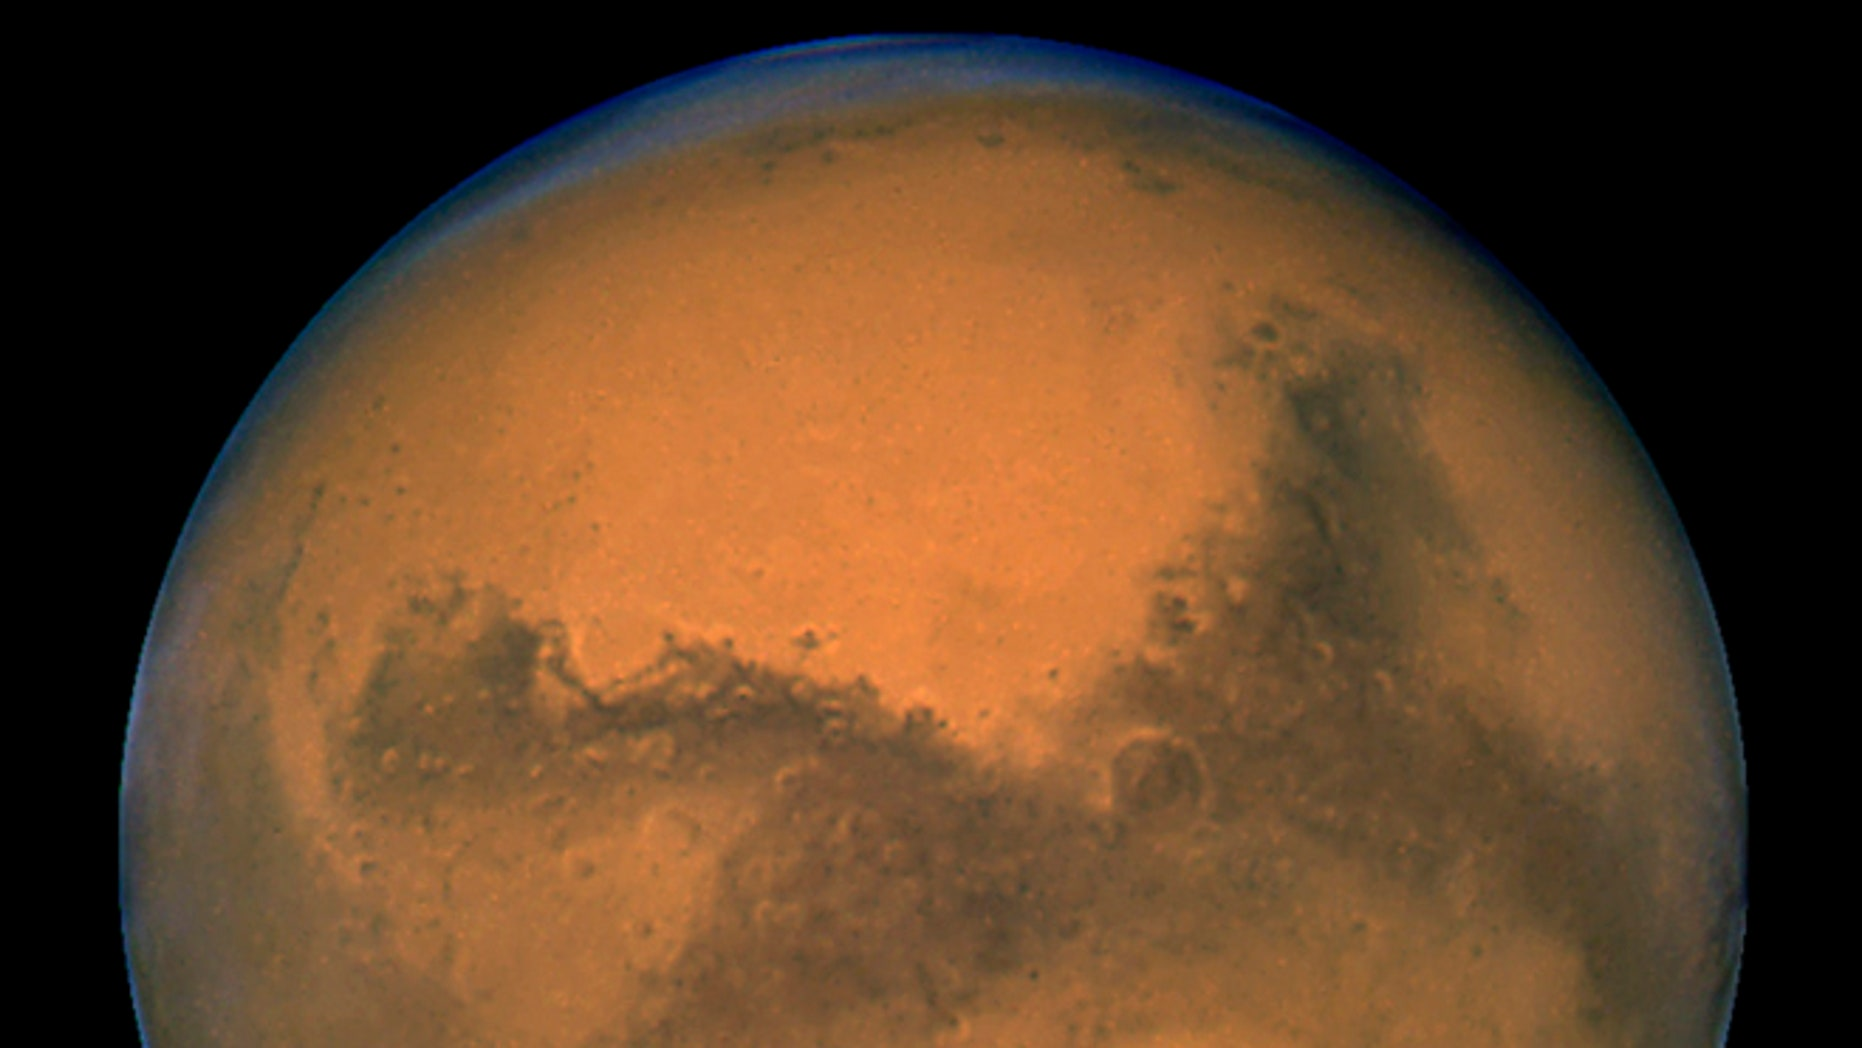 This year Mars will be closer to Earth than it has been since 2007, according to NASA.